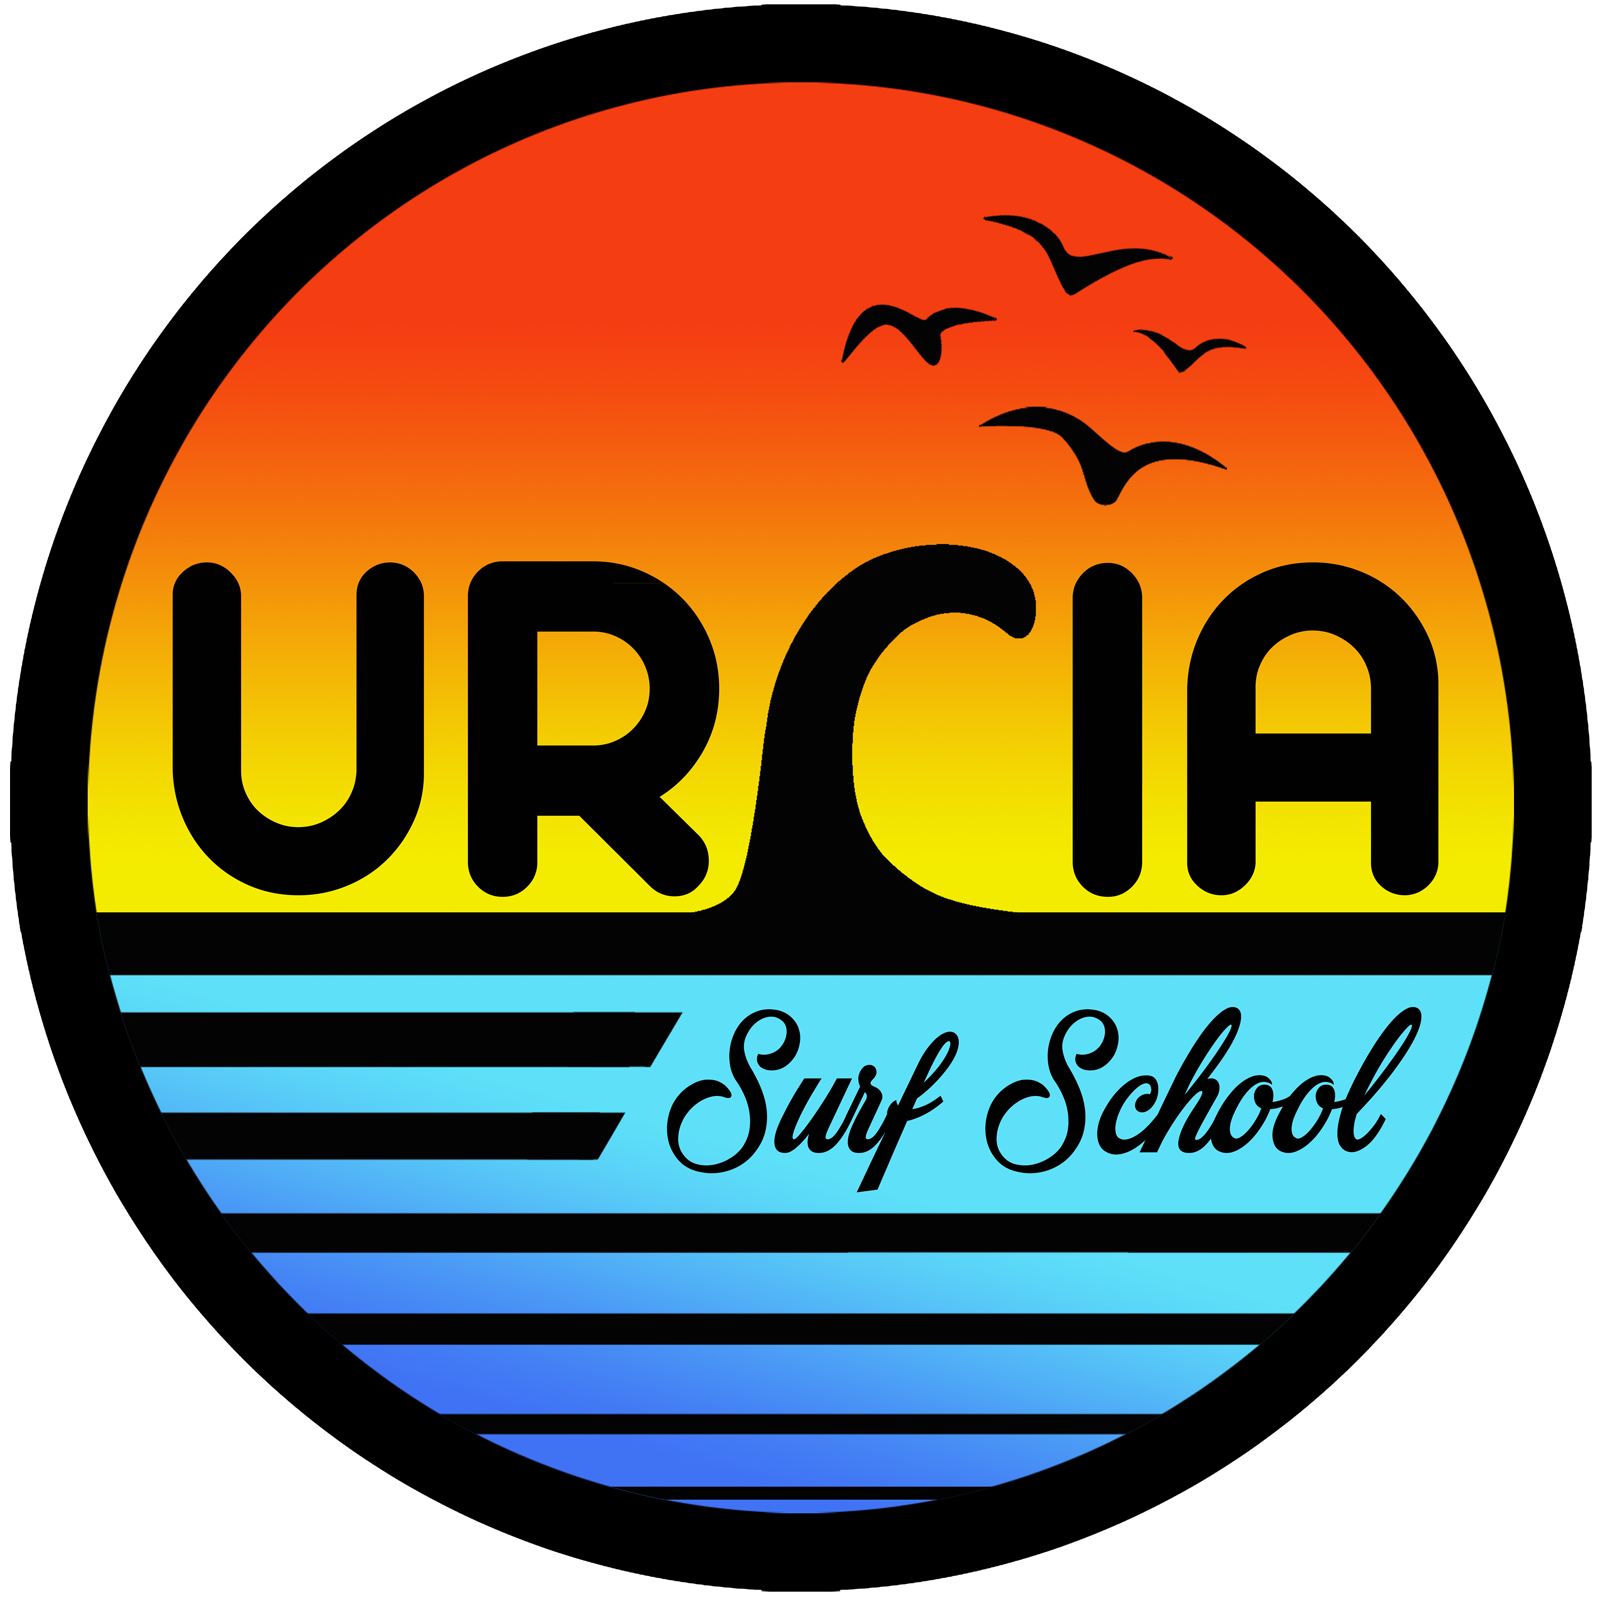 Urcia Surf School